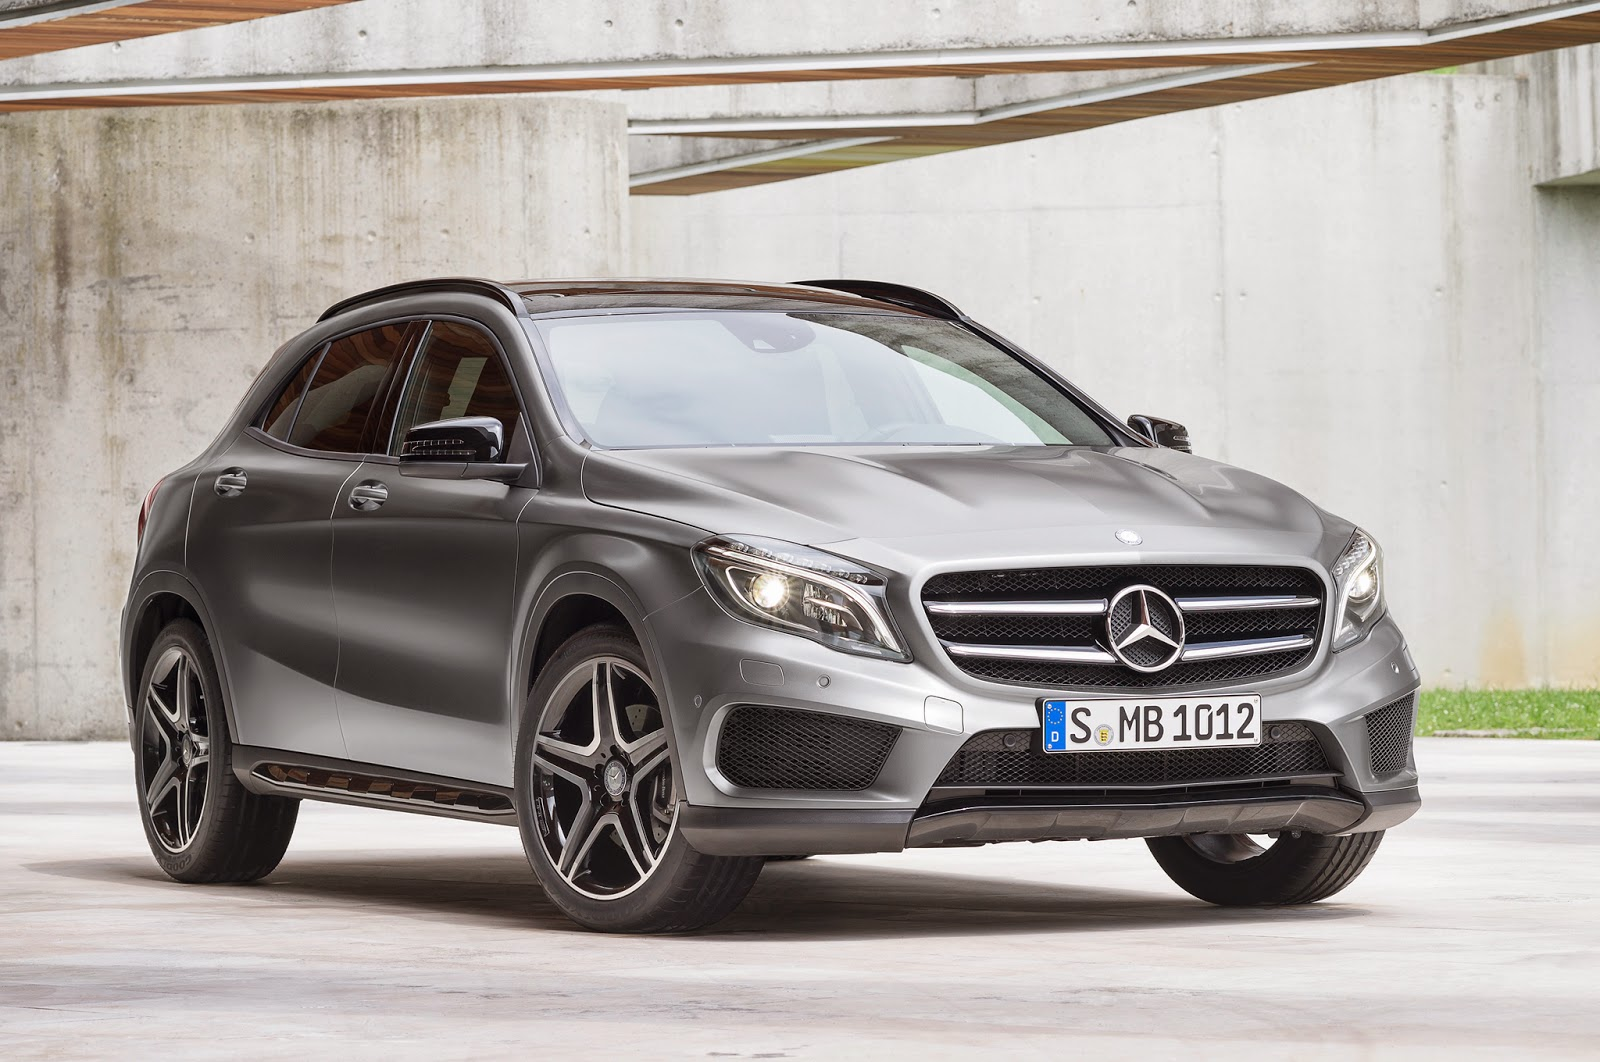 2015-Mercedes-Benz-GLA-Class-front-view